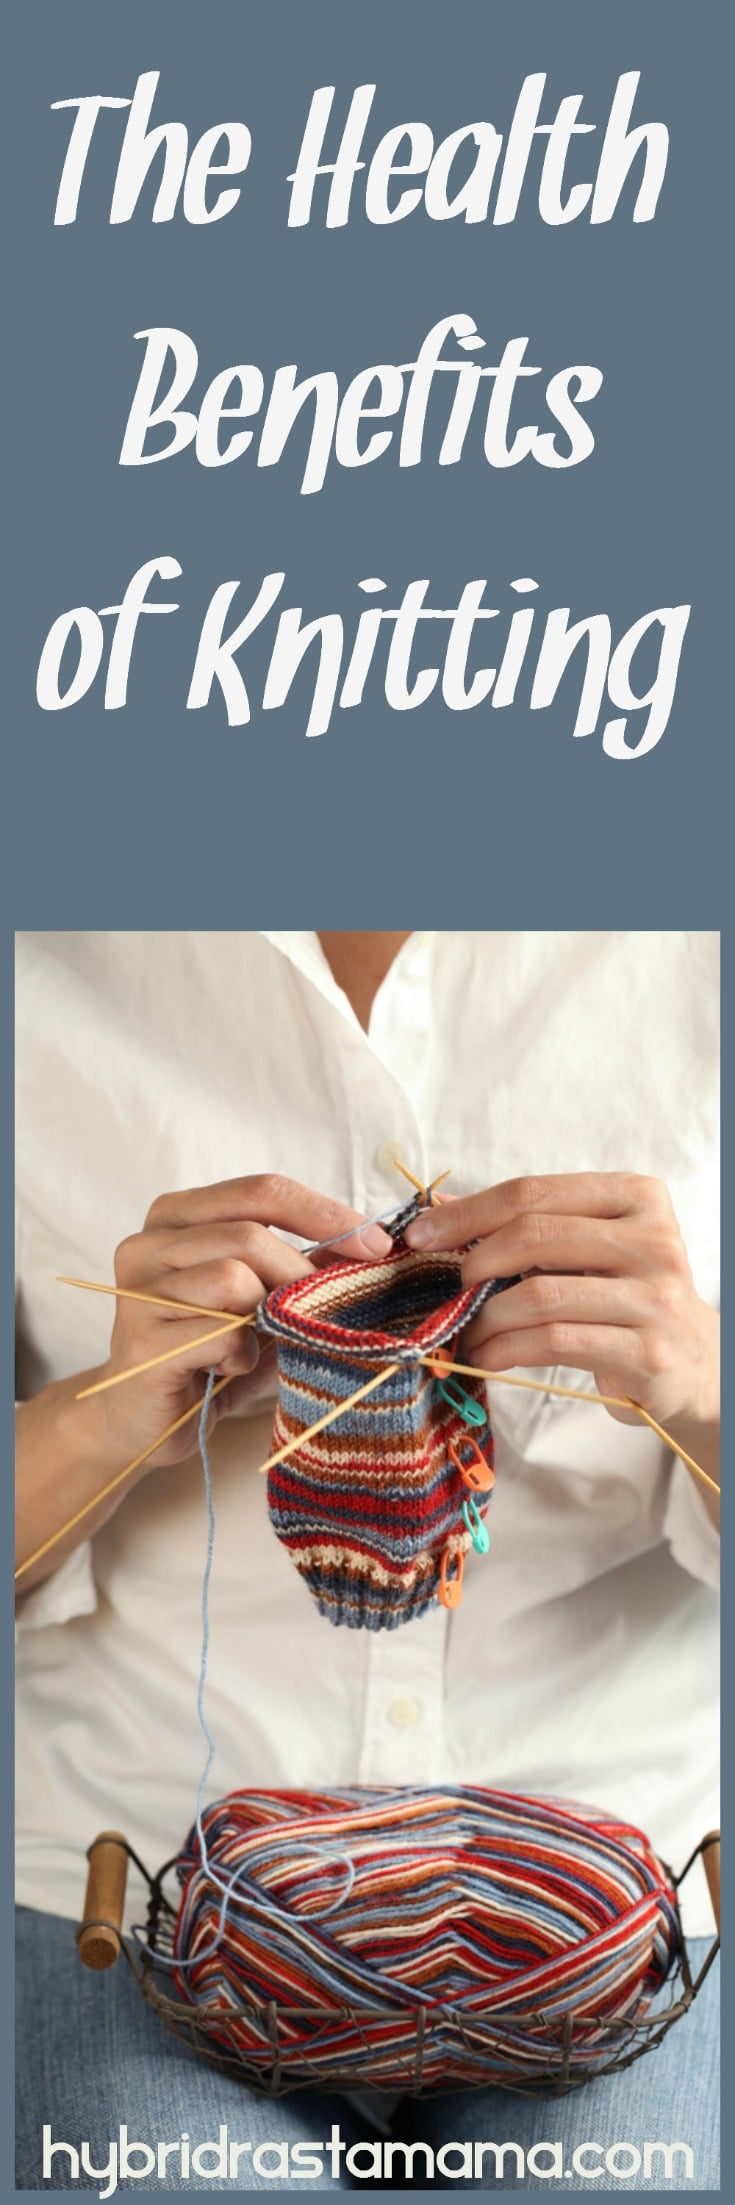 Knitting has a number of significant health benefits you may not know about. If you're not a knitter, here are a few reasons you might want to consider it. From HybridRastaMama.com